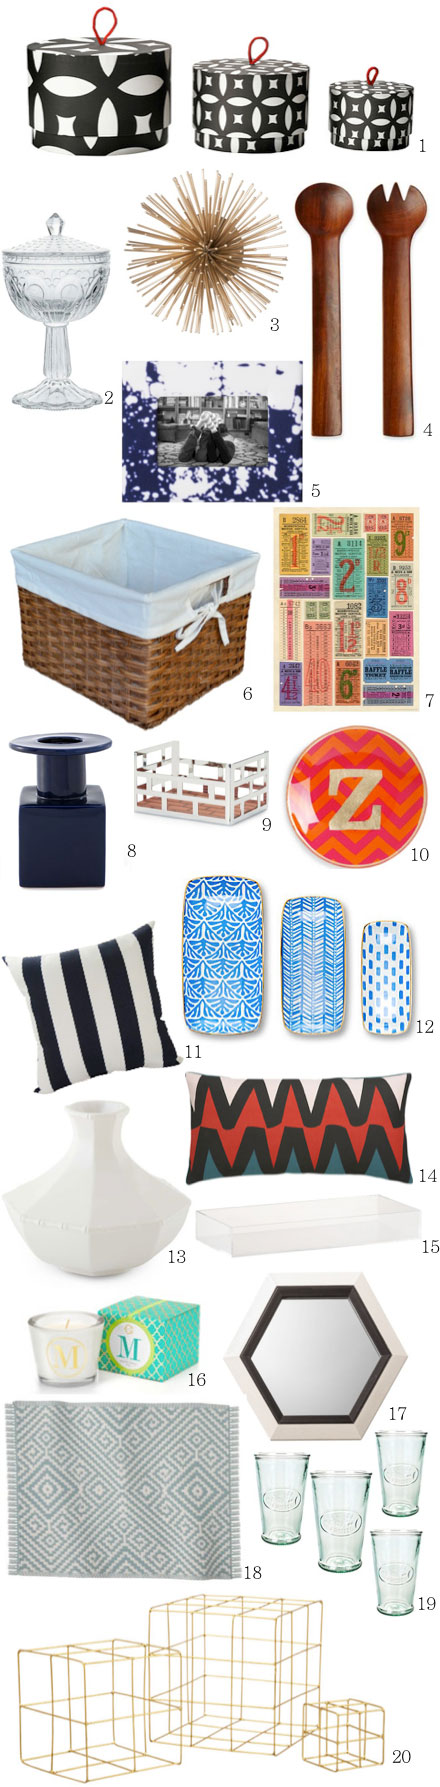 High Style Home Accents Under $20